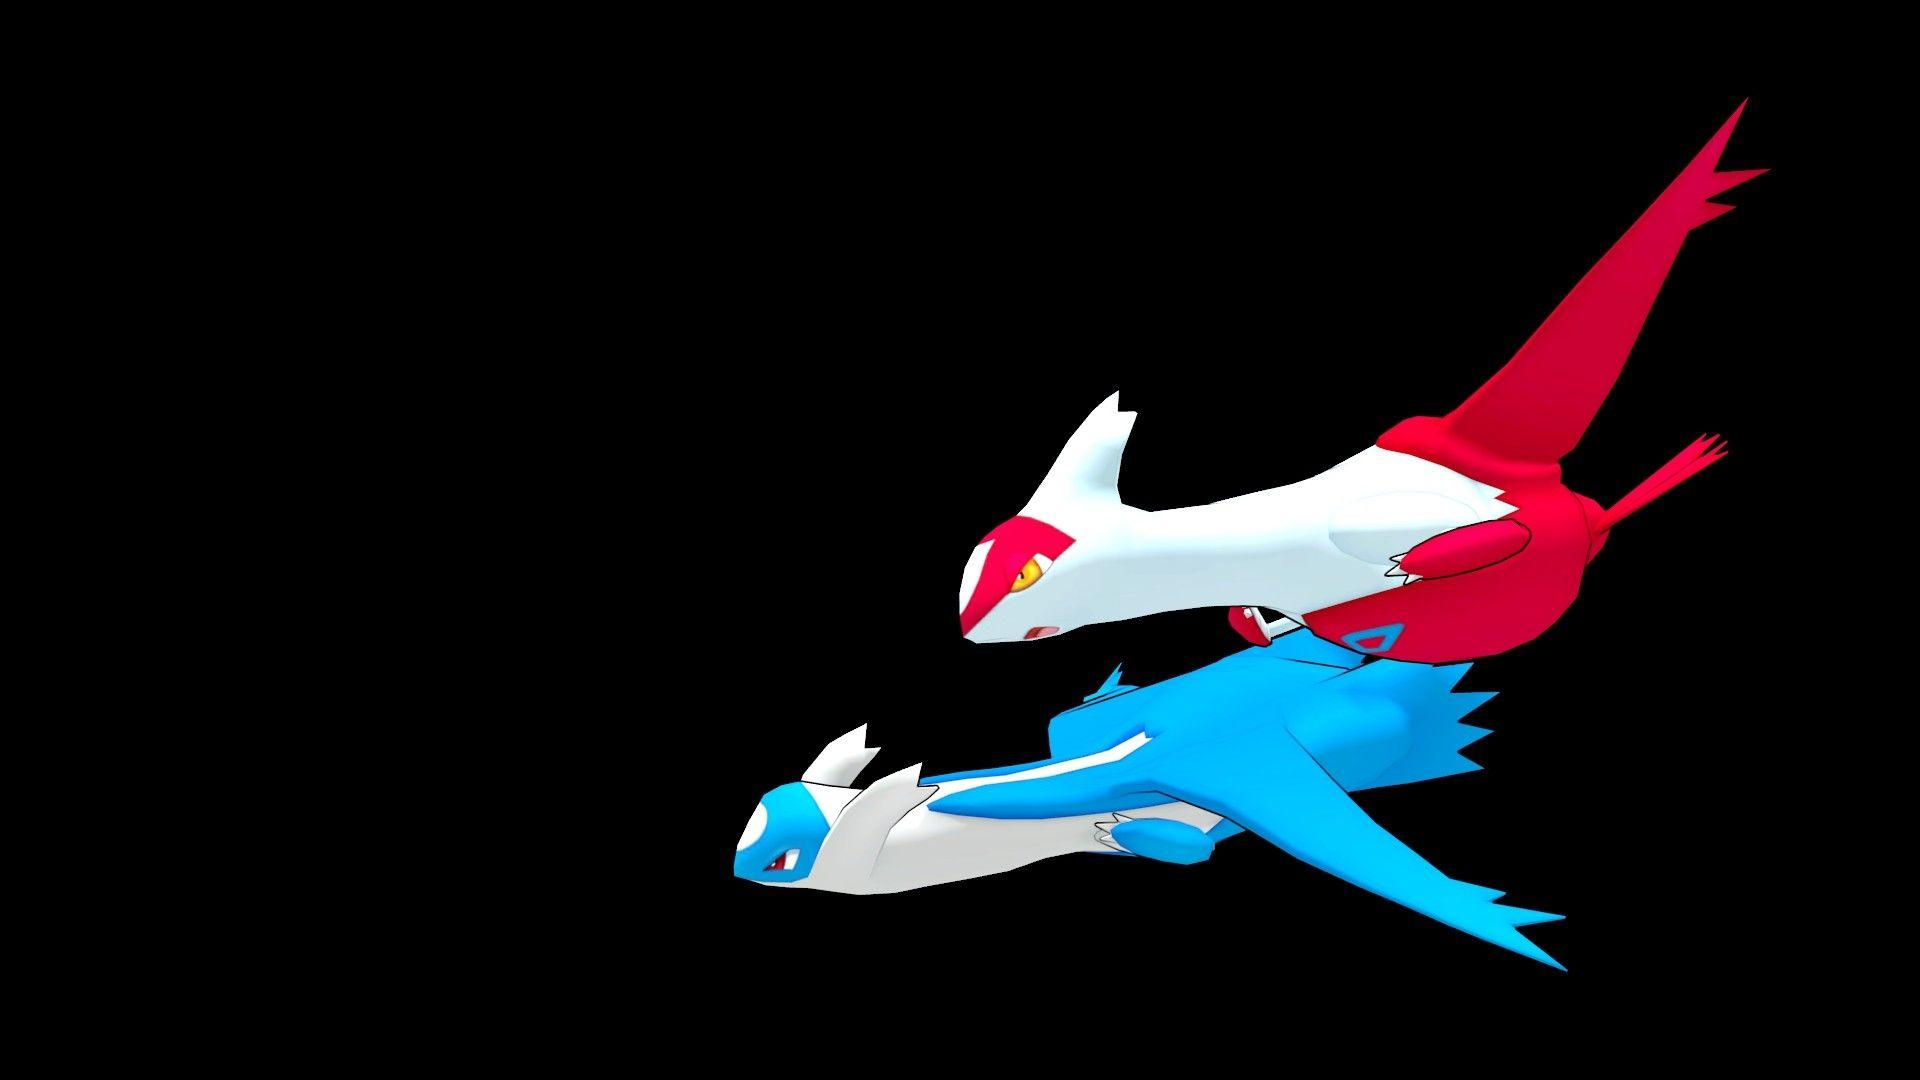 LatiOS Wallpaper (81+ images)